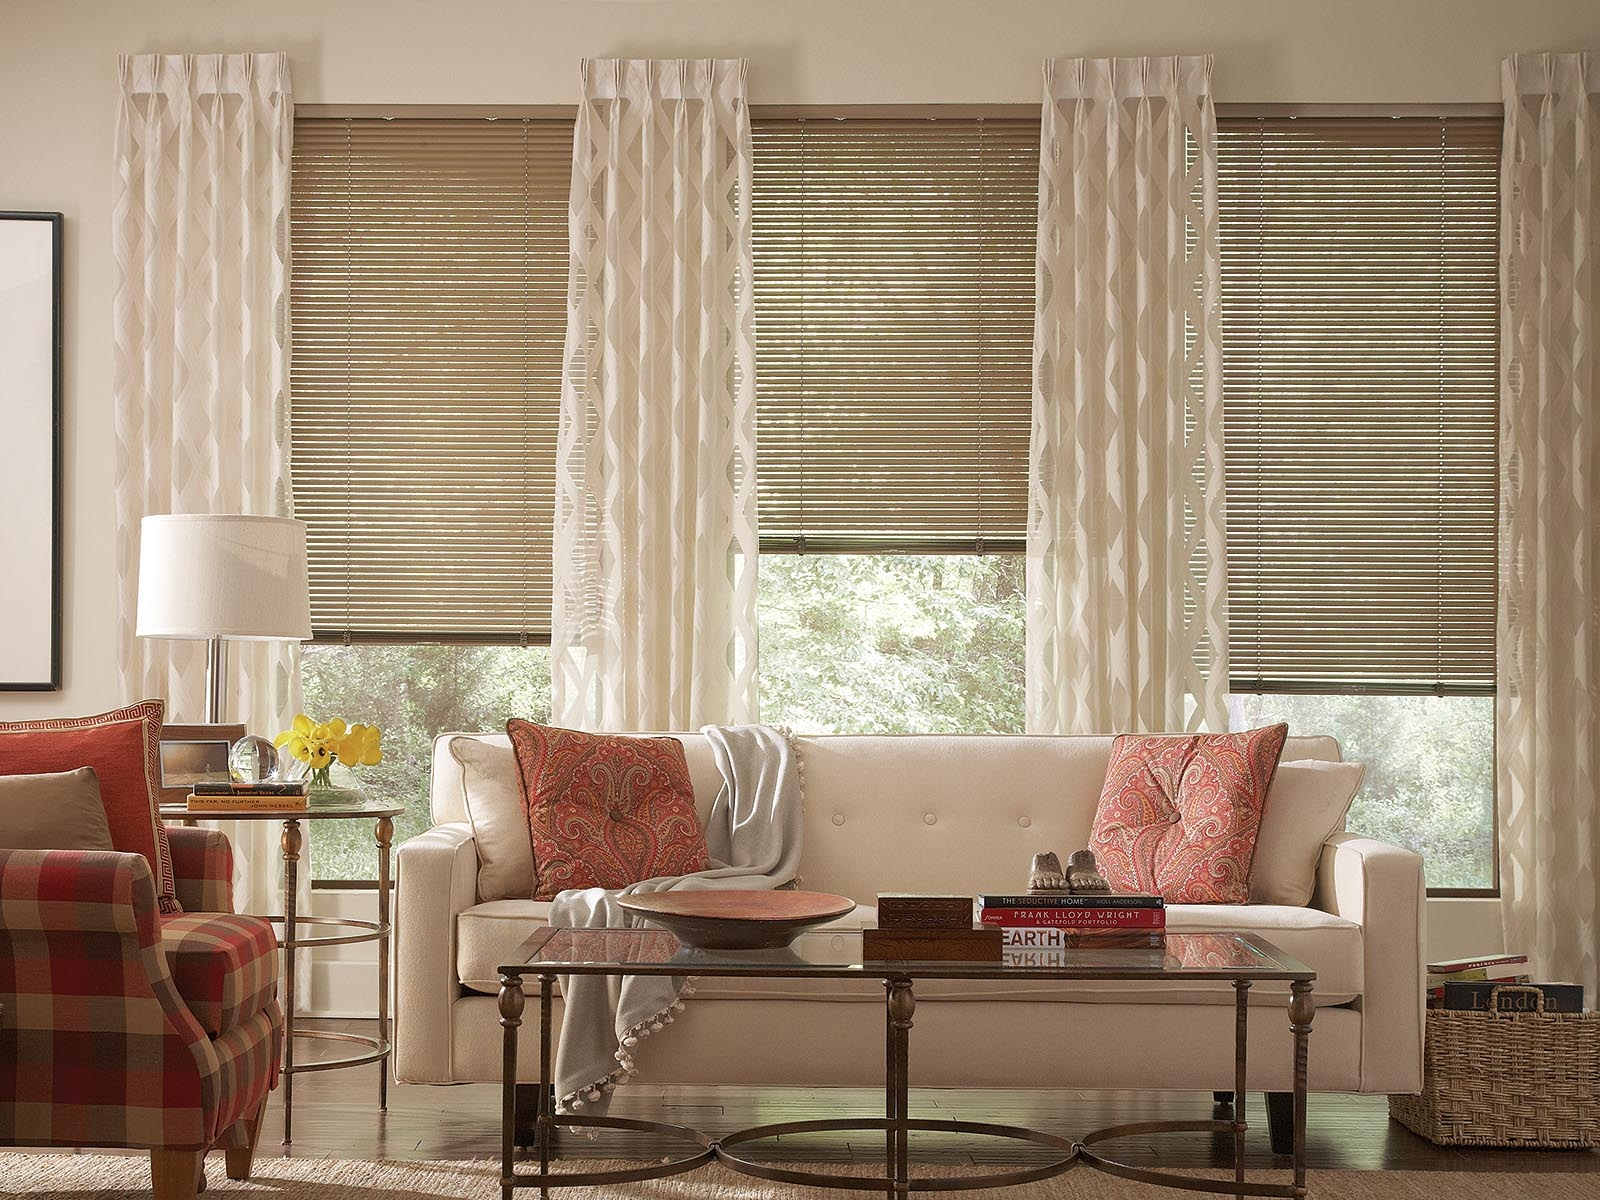 Shades Blinds Drapes And Shutters Lafayette Interior Fashions With Regard To Pattern Blinds (Image 13 of 15)